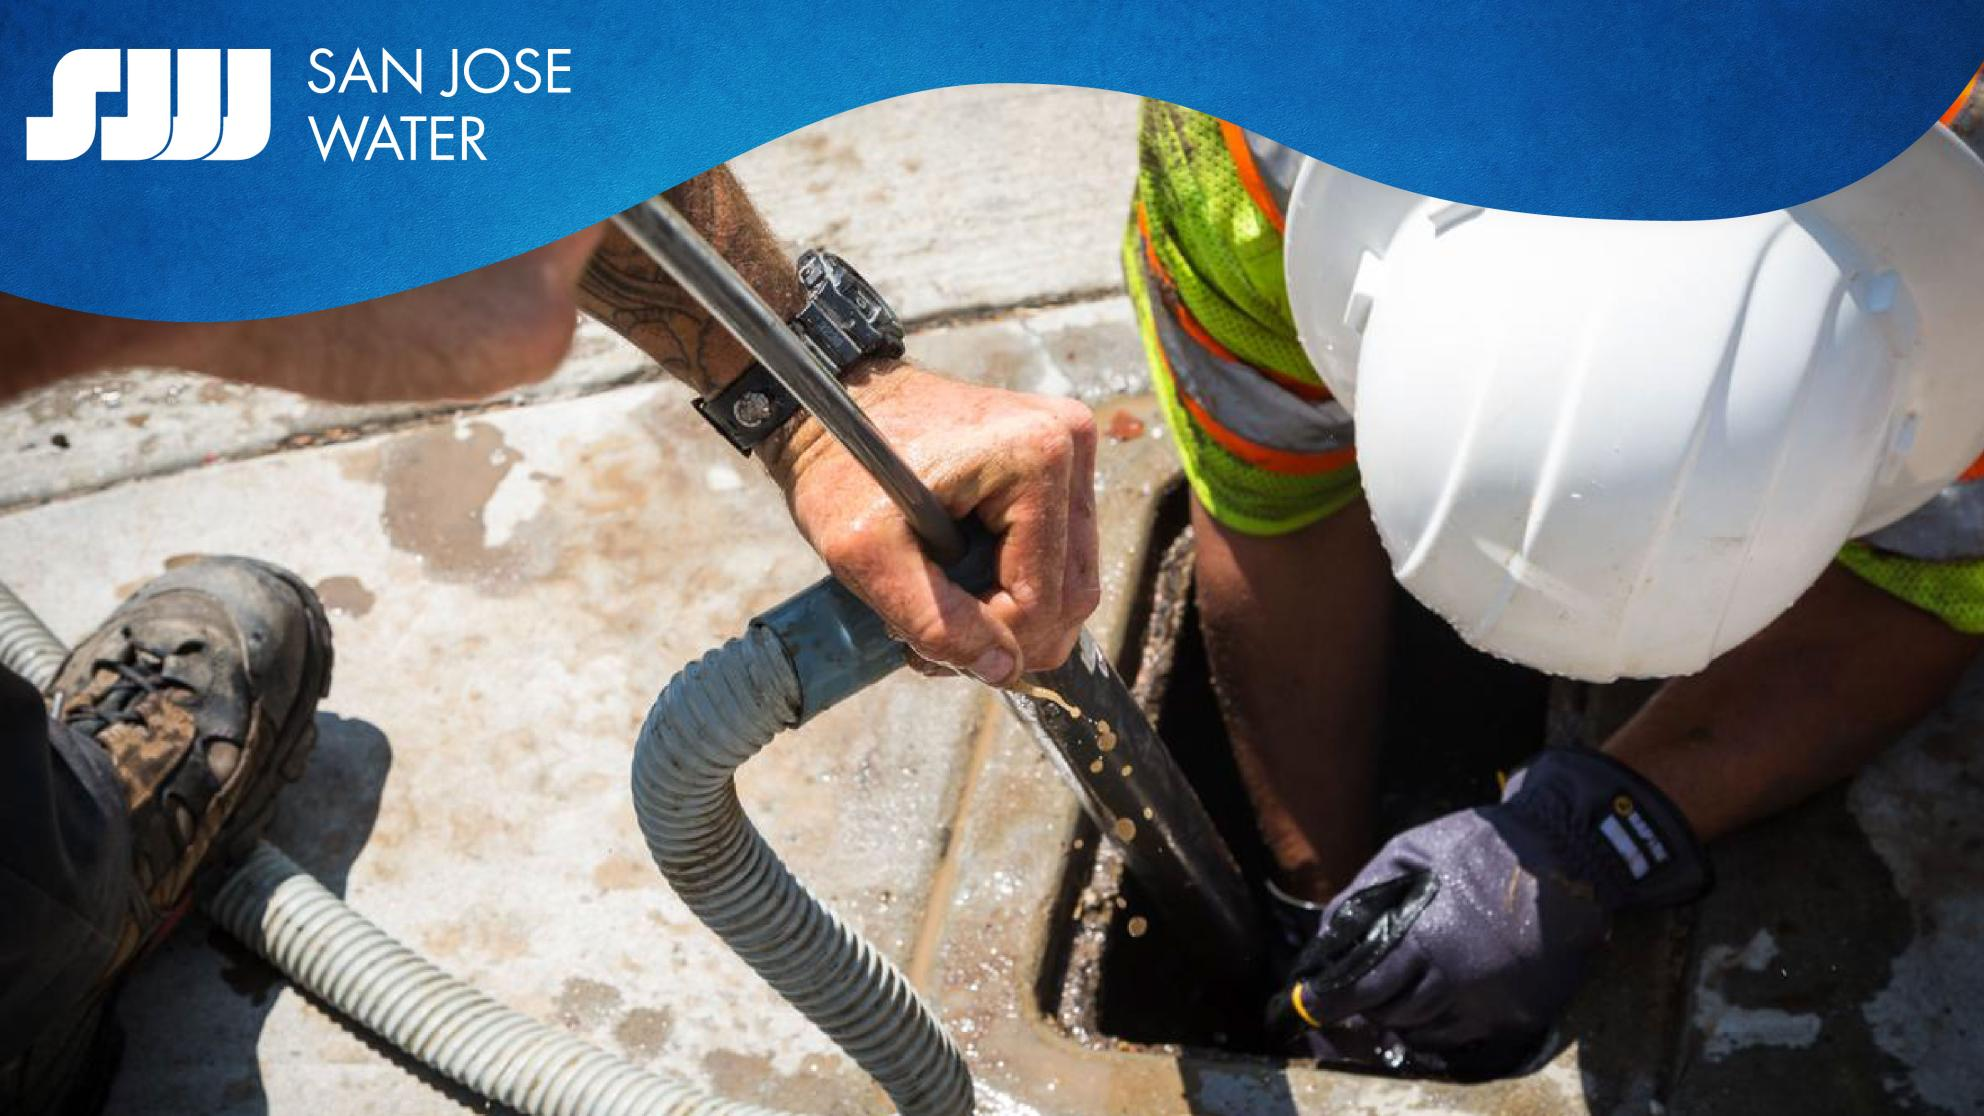 San Jose Water logo and water infrastructure work